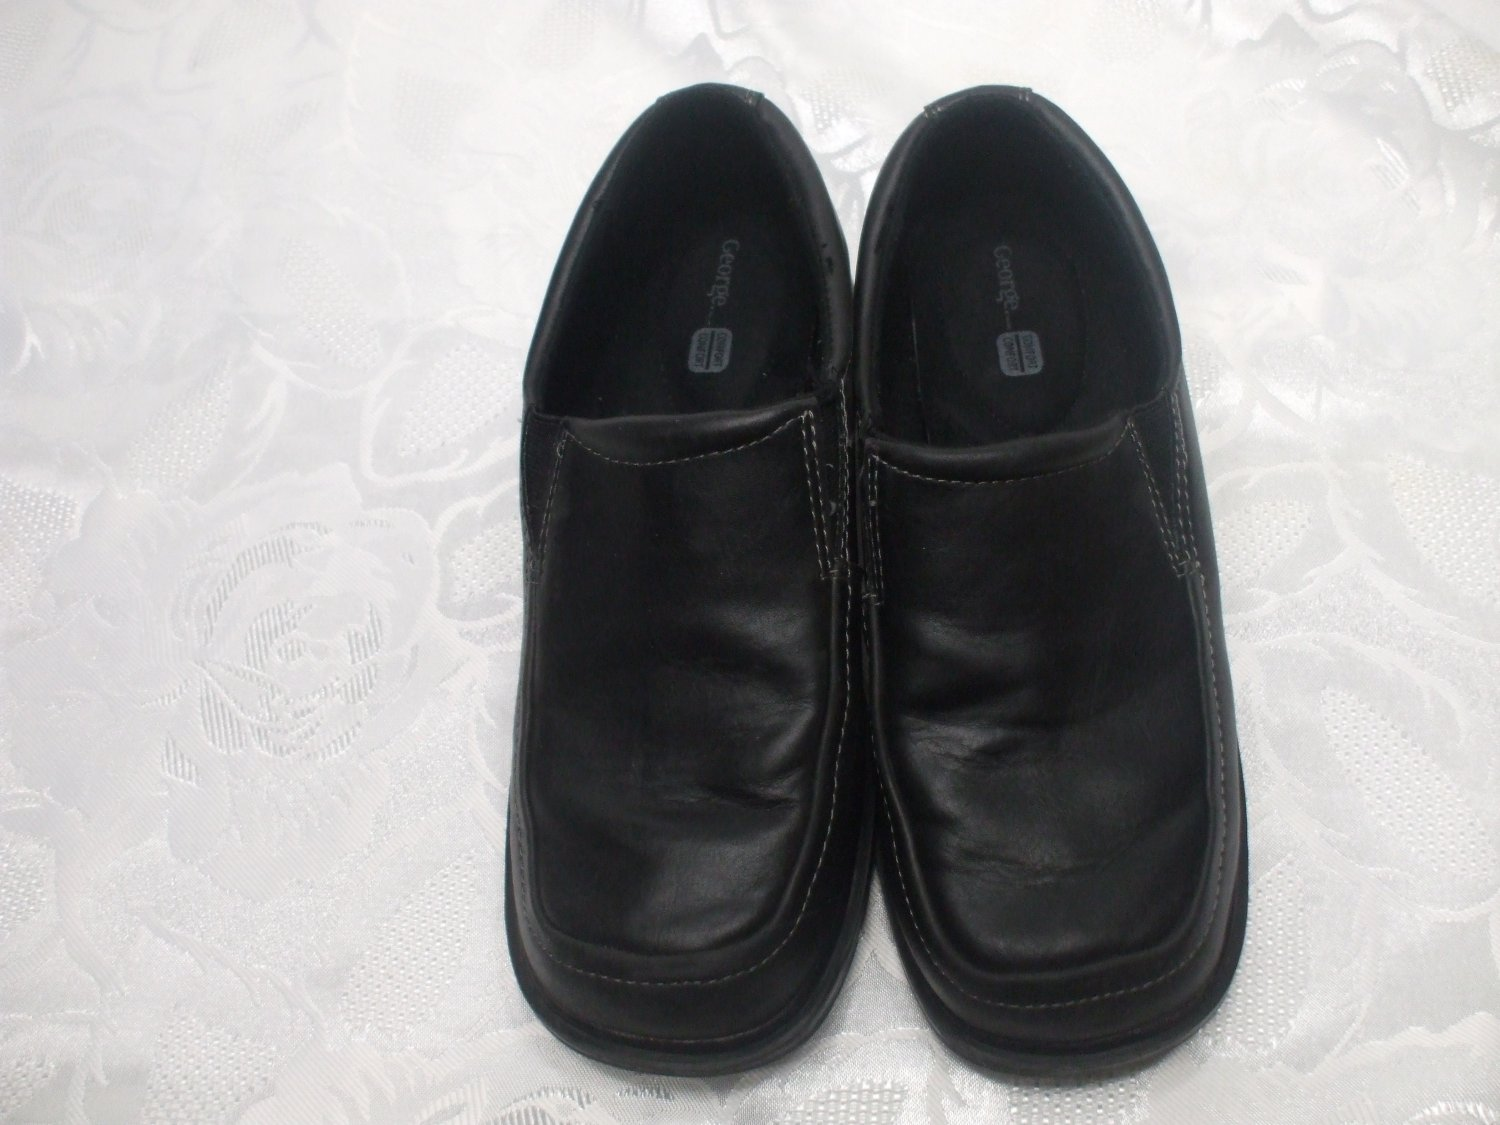 George Comfort  Black Dress Shoes Size 3 Boys Heel To Toe 9.5 Inches